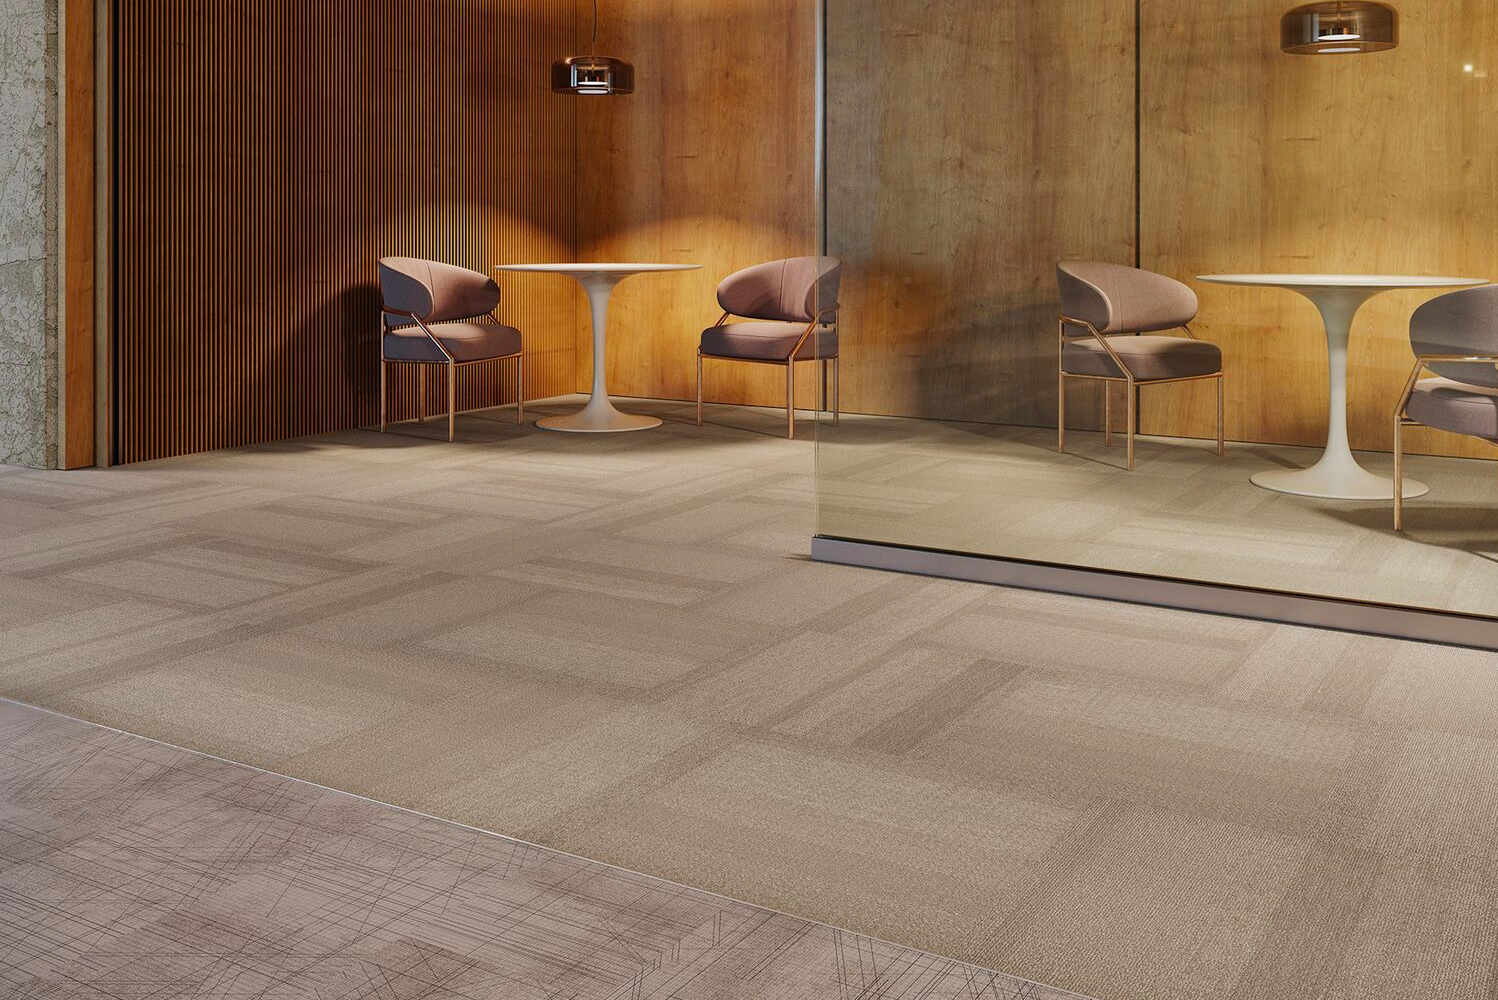 Meshwork LVT is a graphically inspired design that features a layering of vertical, horizontal and diagonal lines.